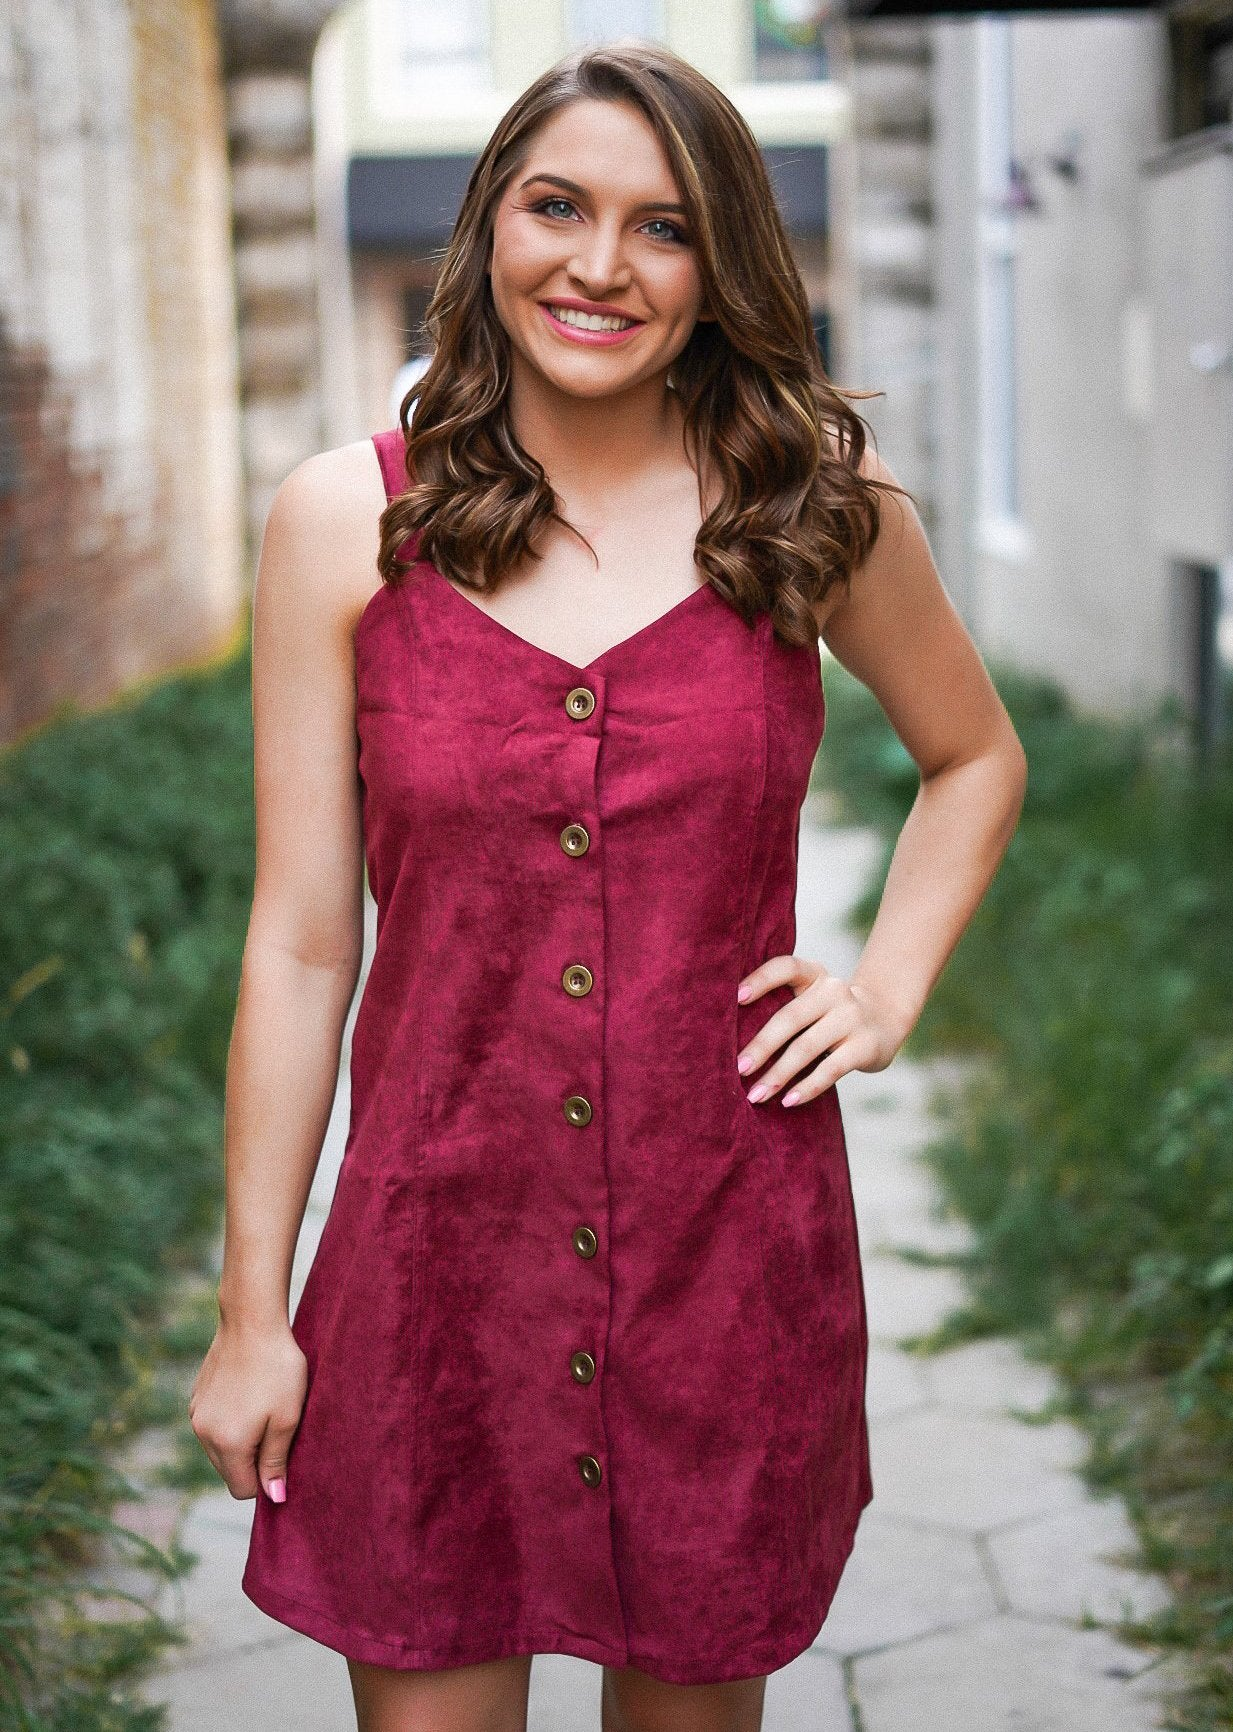 One Wish Faux Suede Dress - Maroon